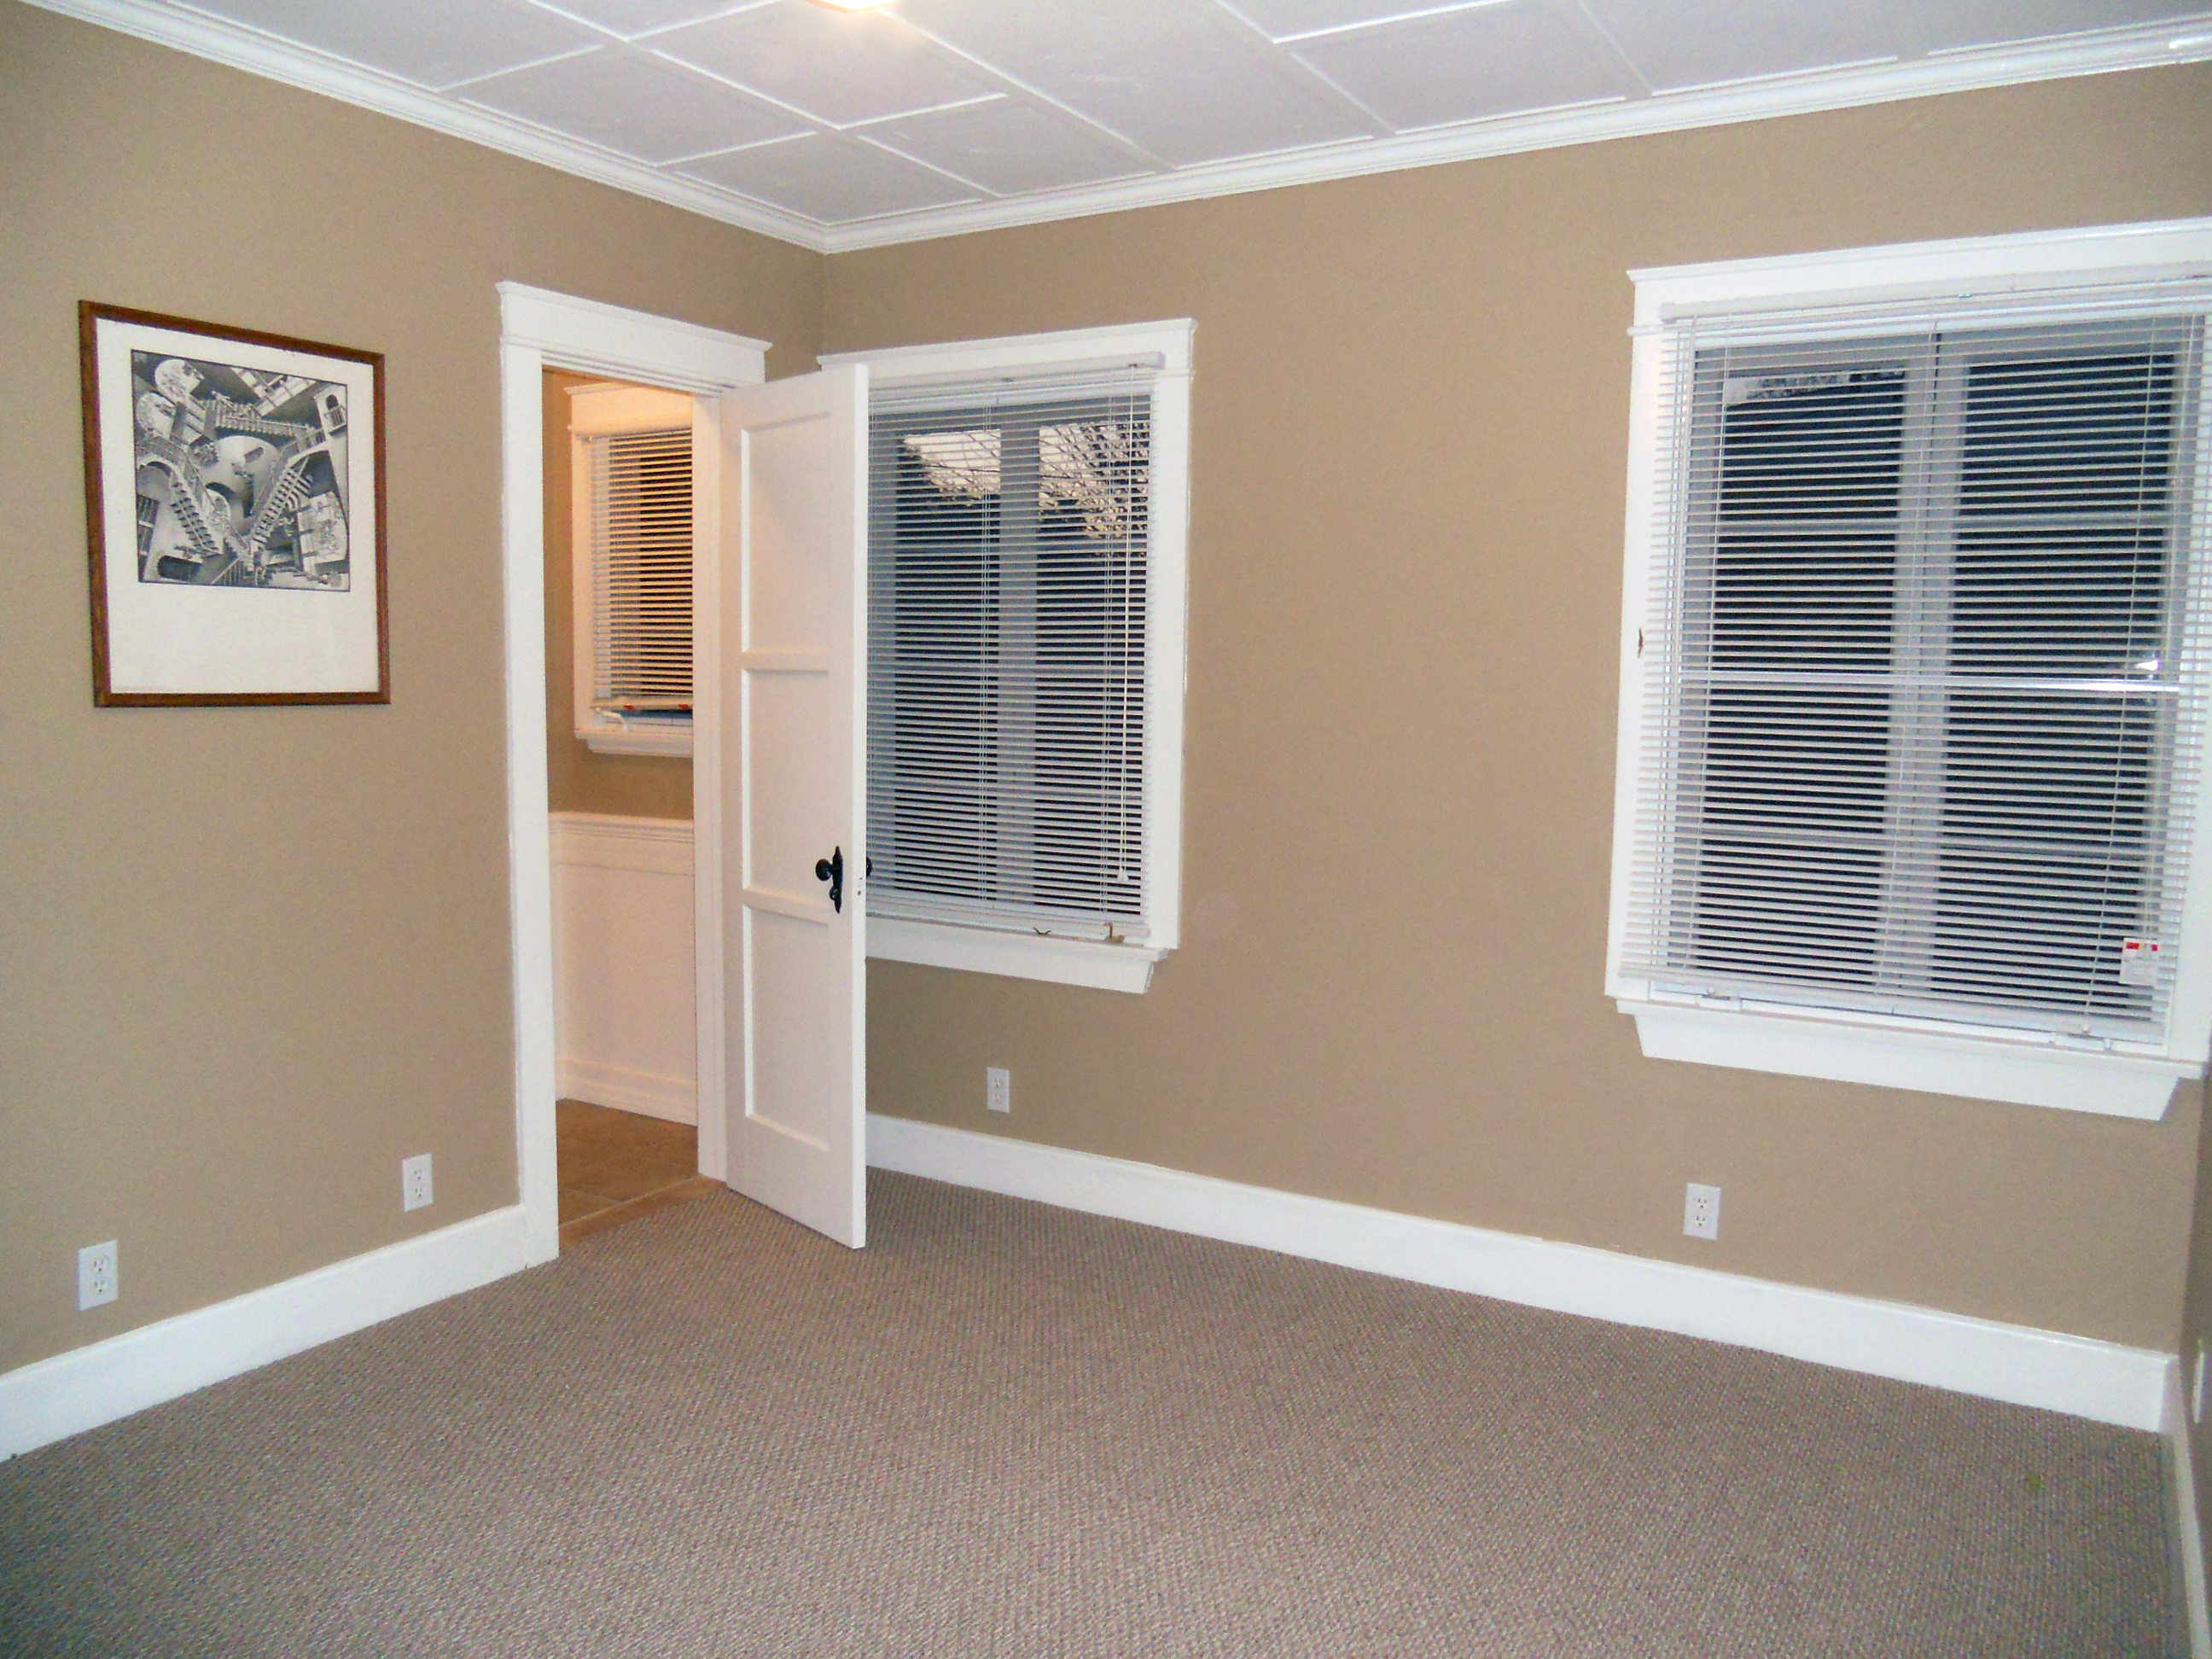 Popular Back bedroom with new carpet working wood windows new paint and a small